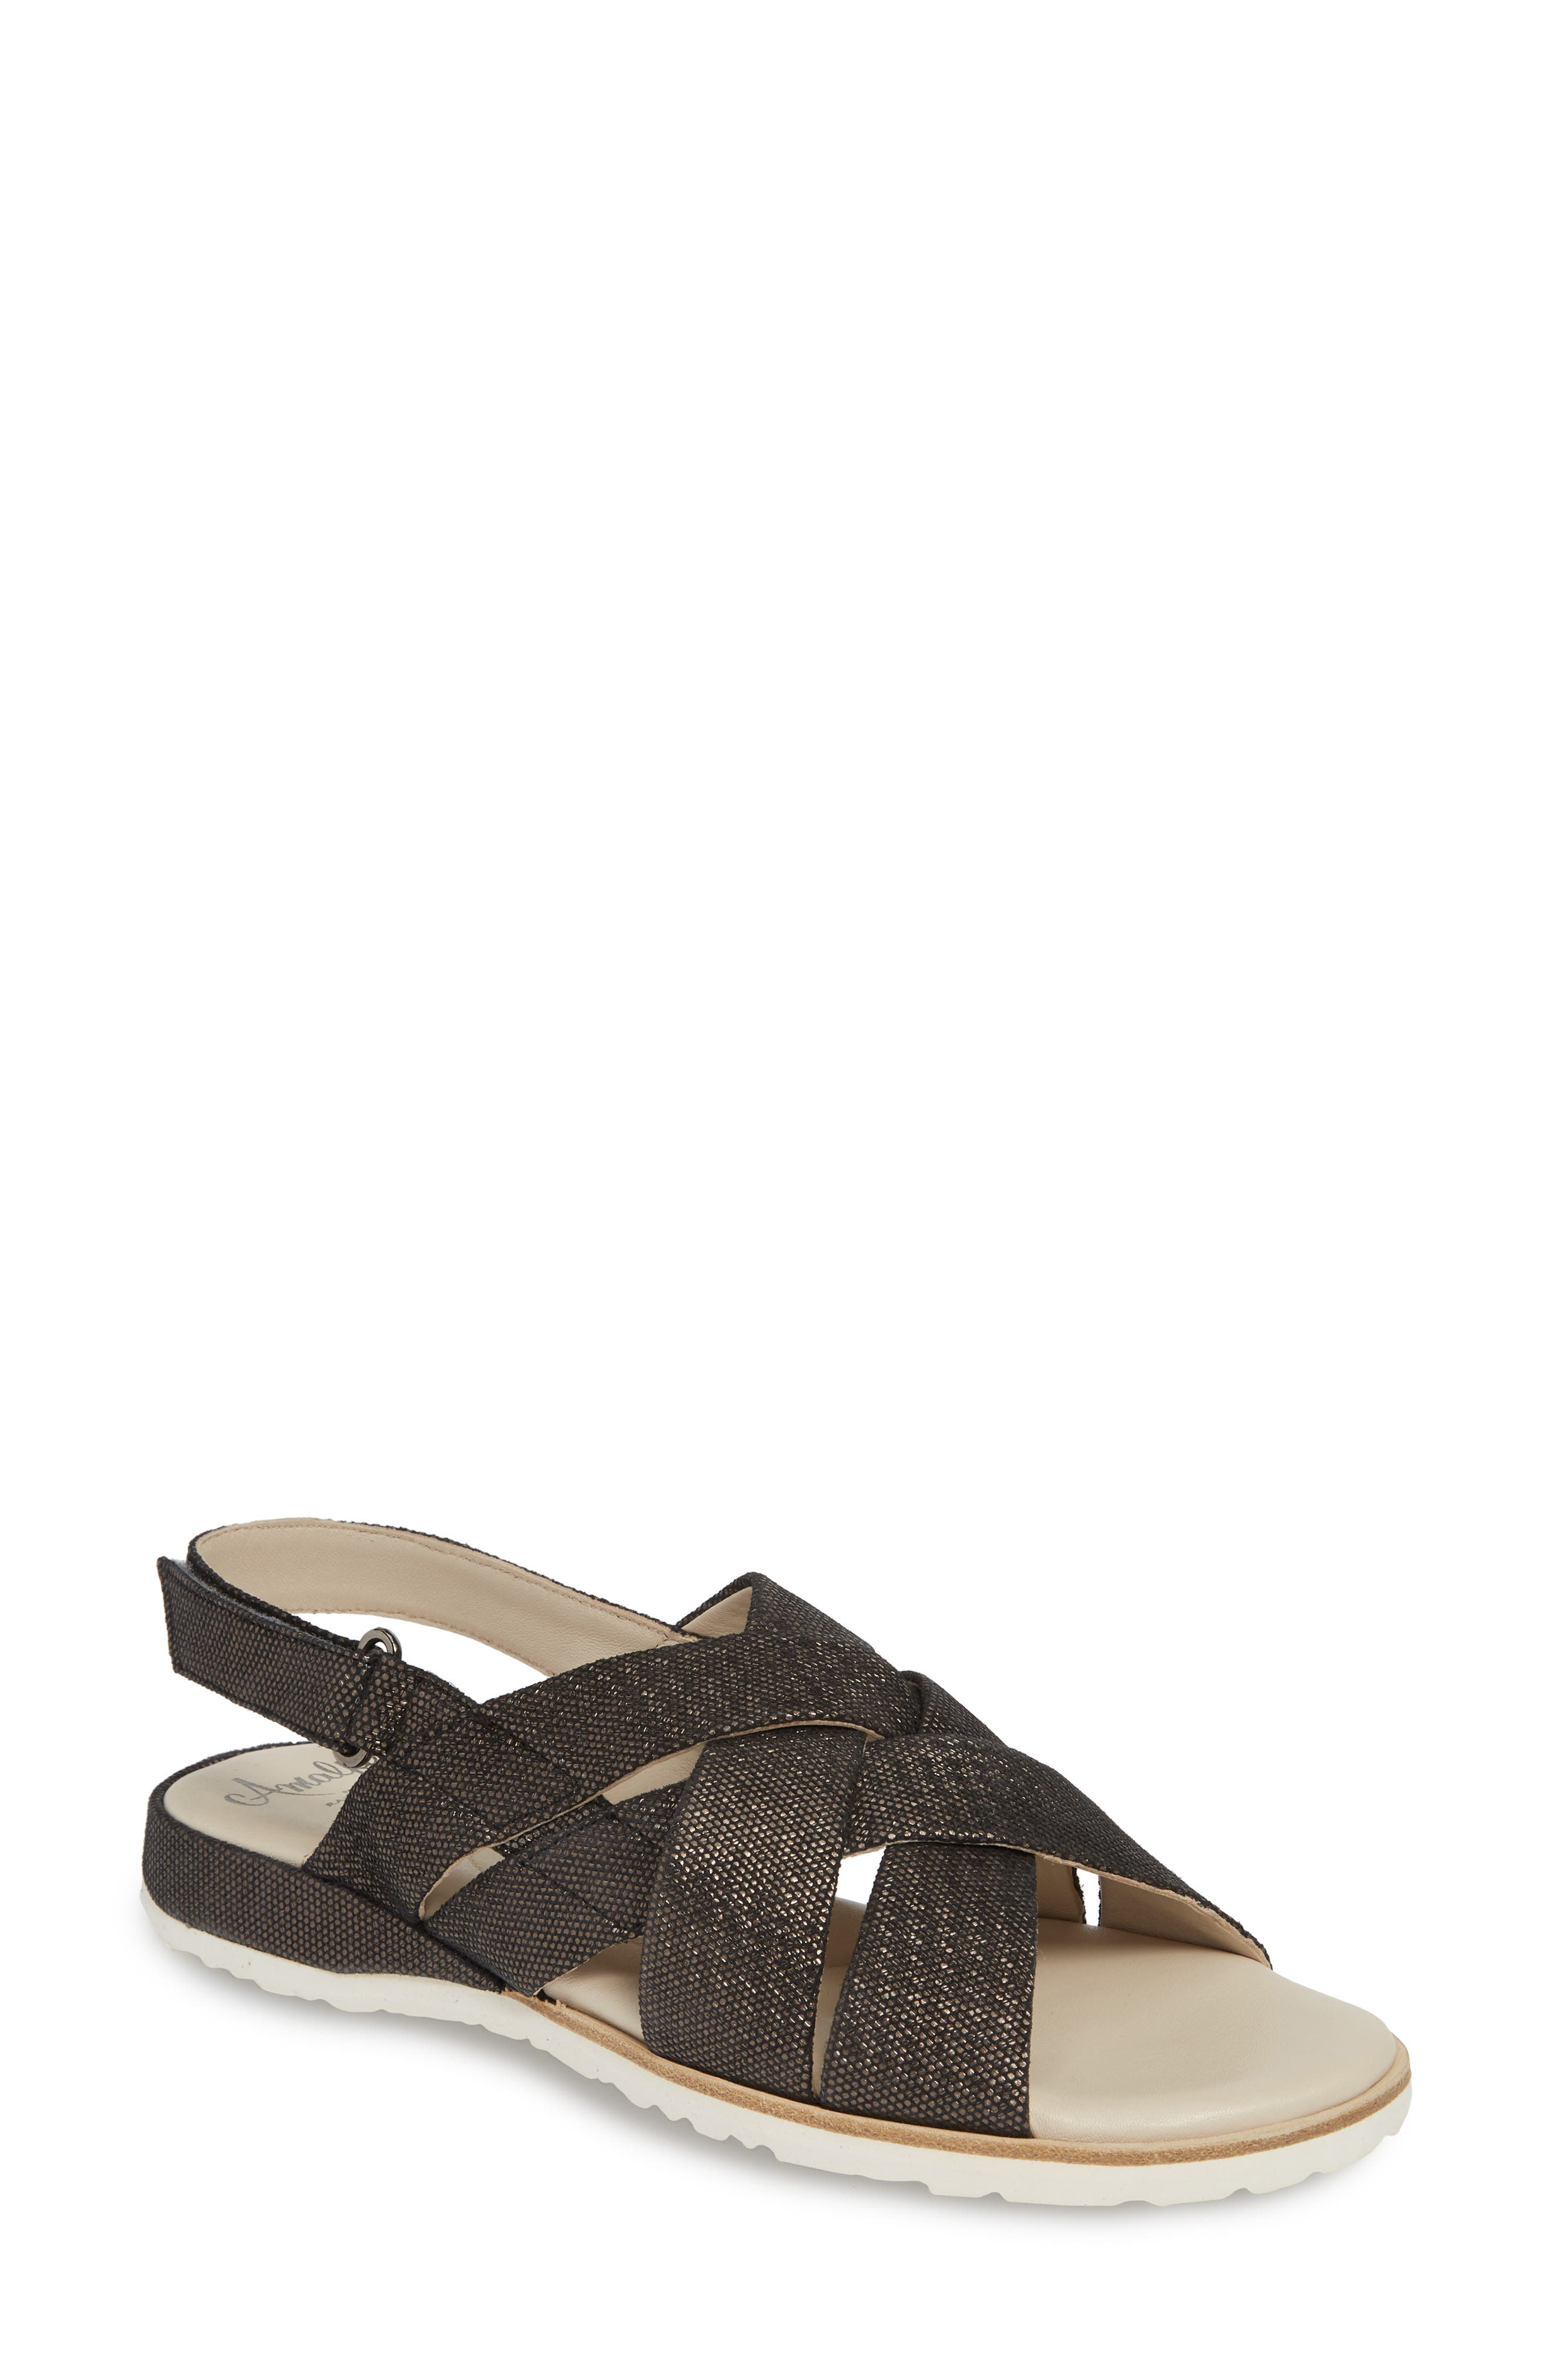 Biondina Textured Sandal, Main, color, GRAPHITE LEATHER